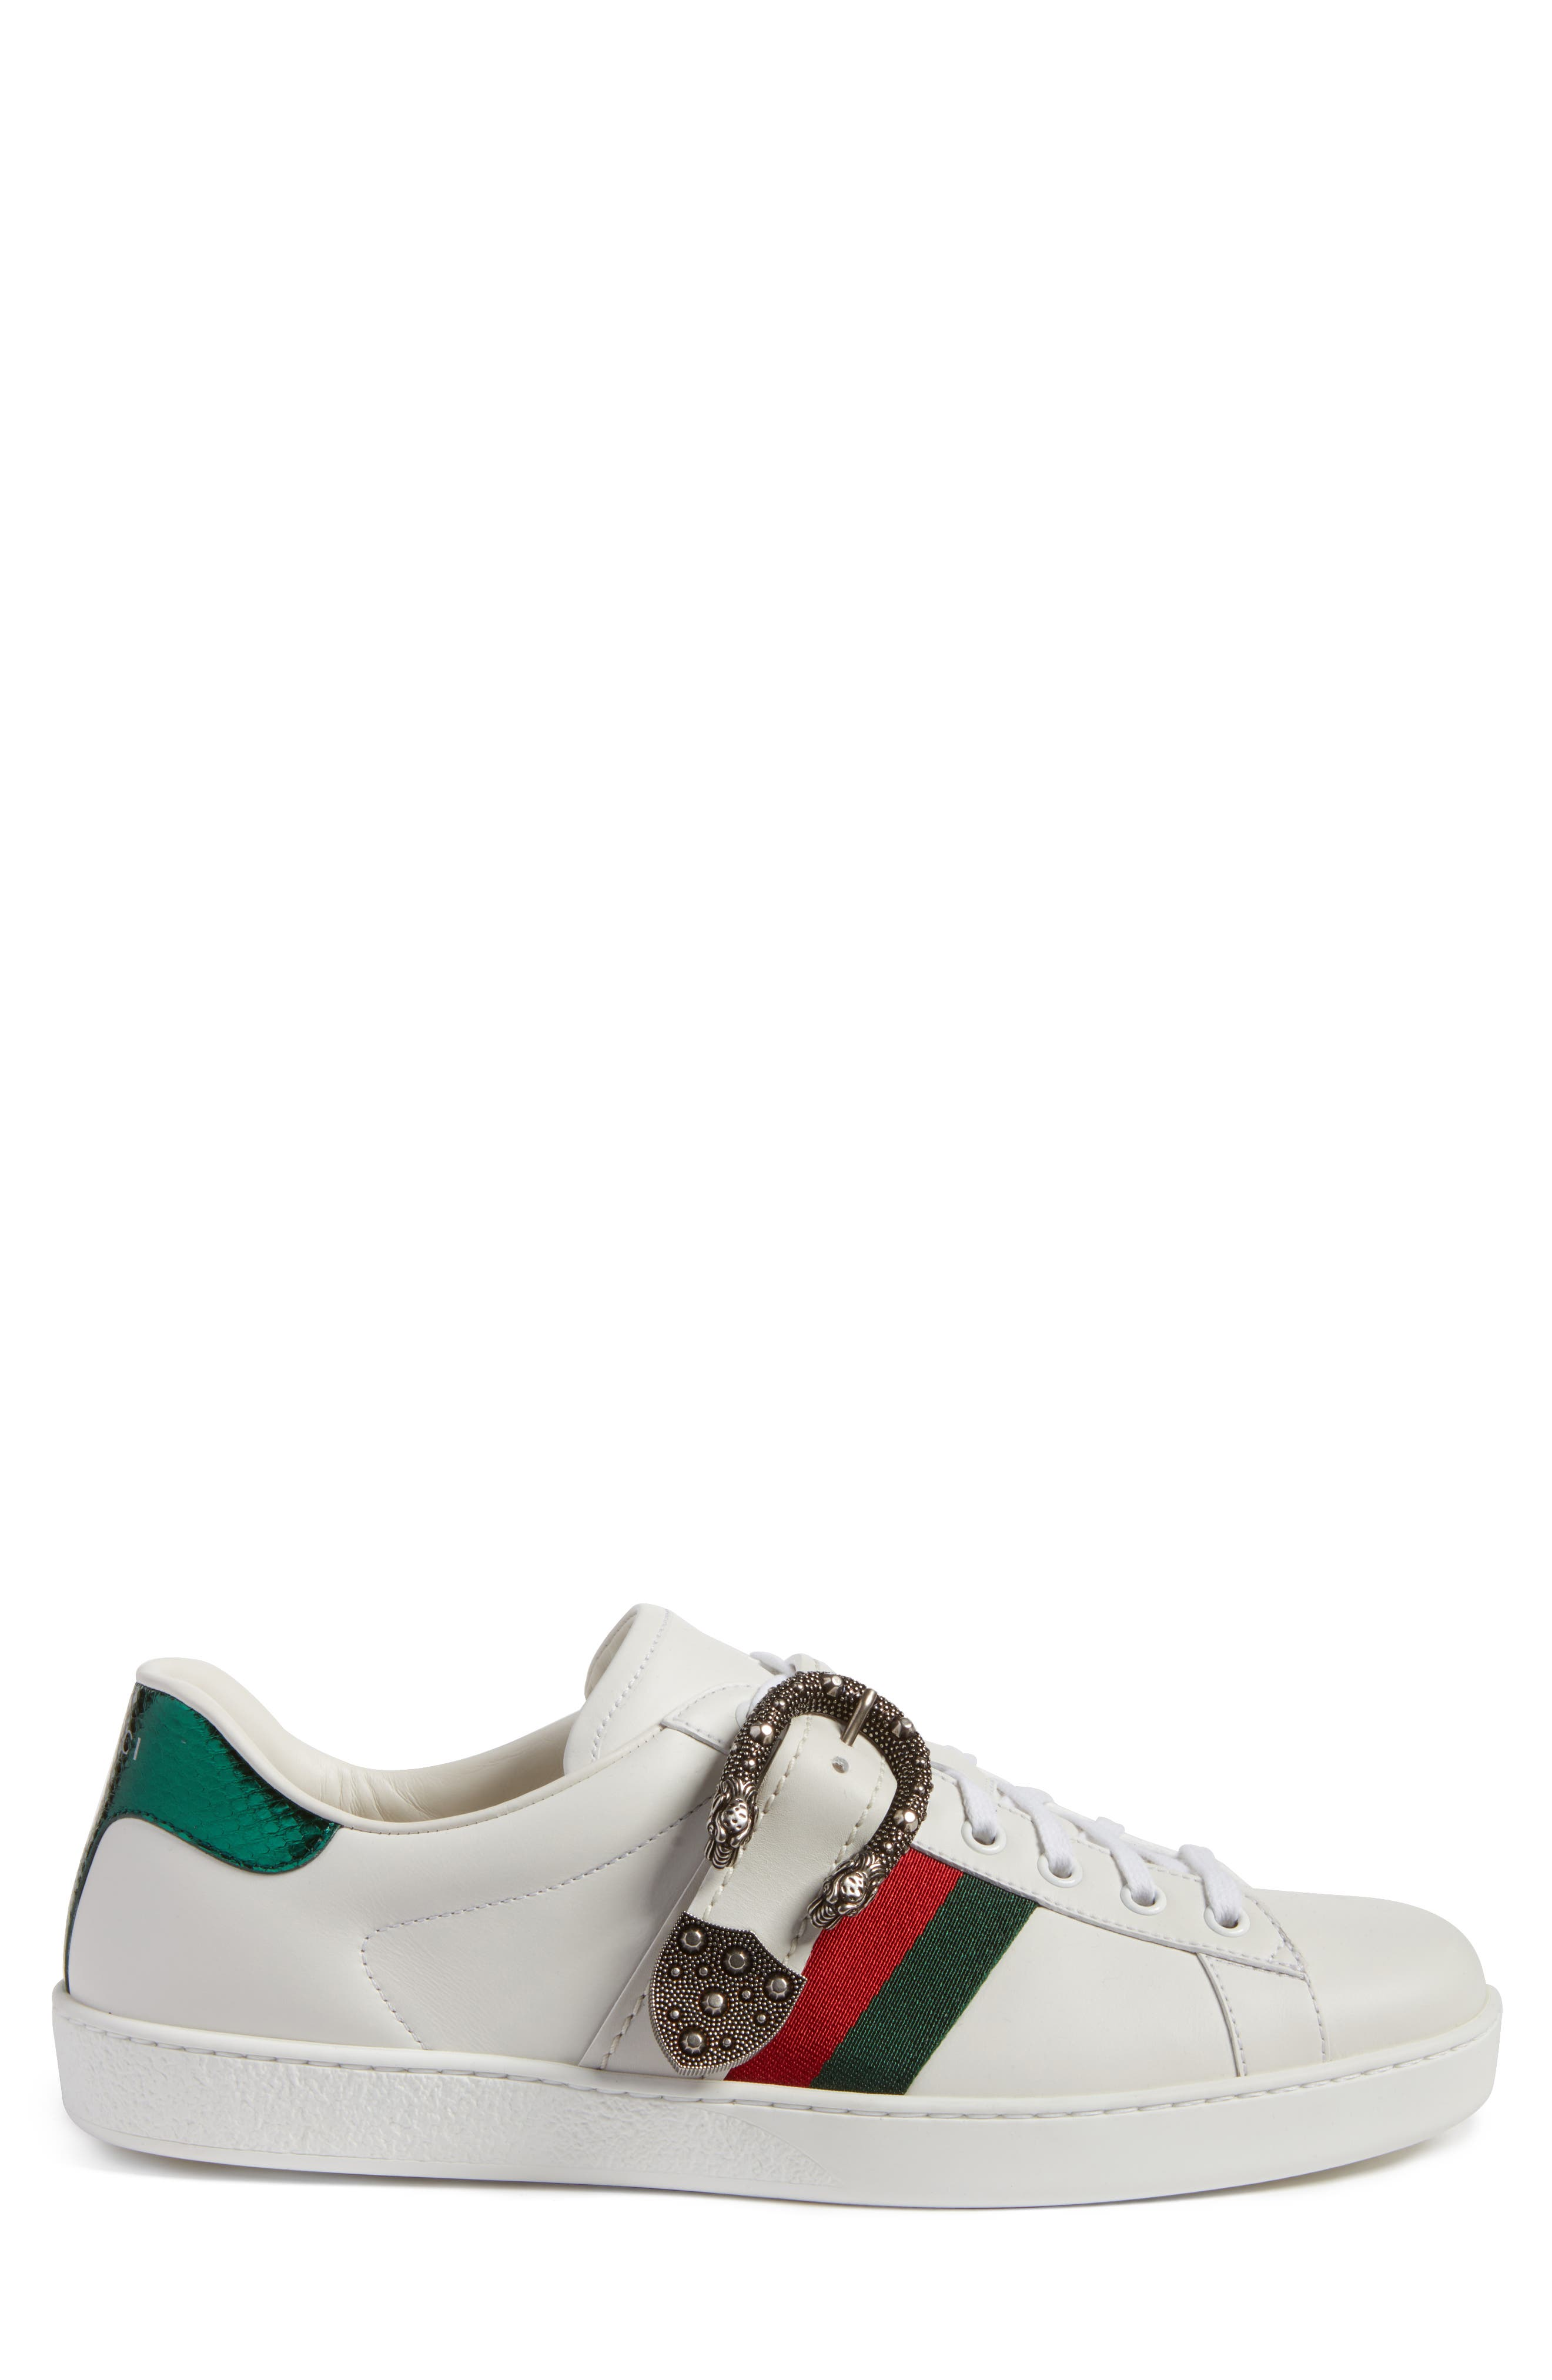 New Ace Dionysus Buckle Low Top Sneaker,                             Alternate thumbnail 3, color,                             138